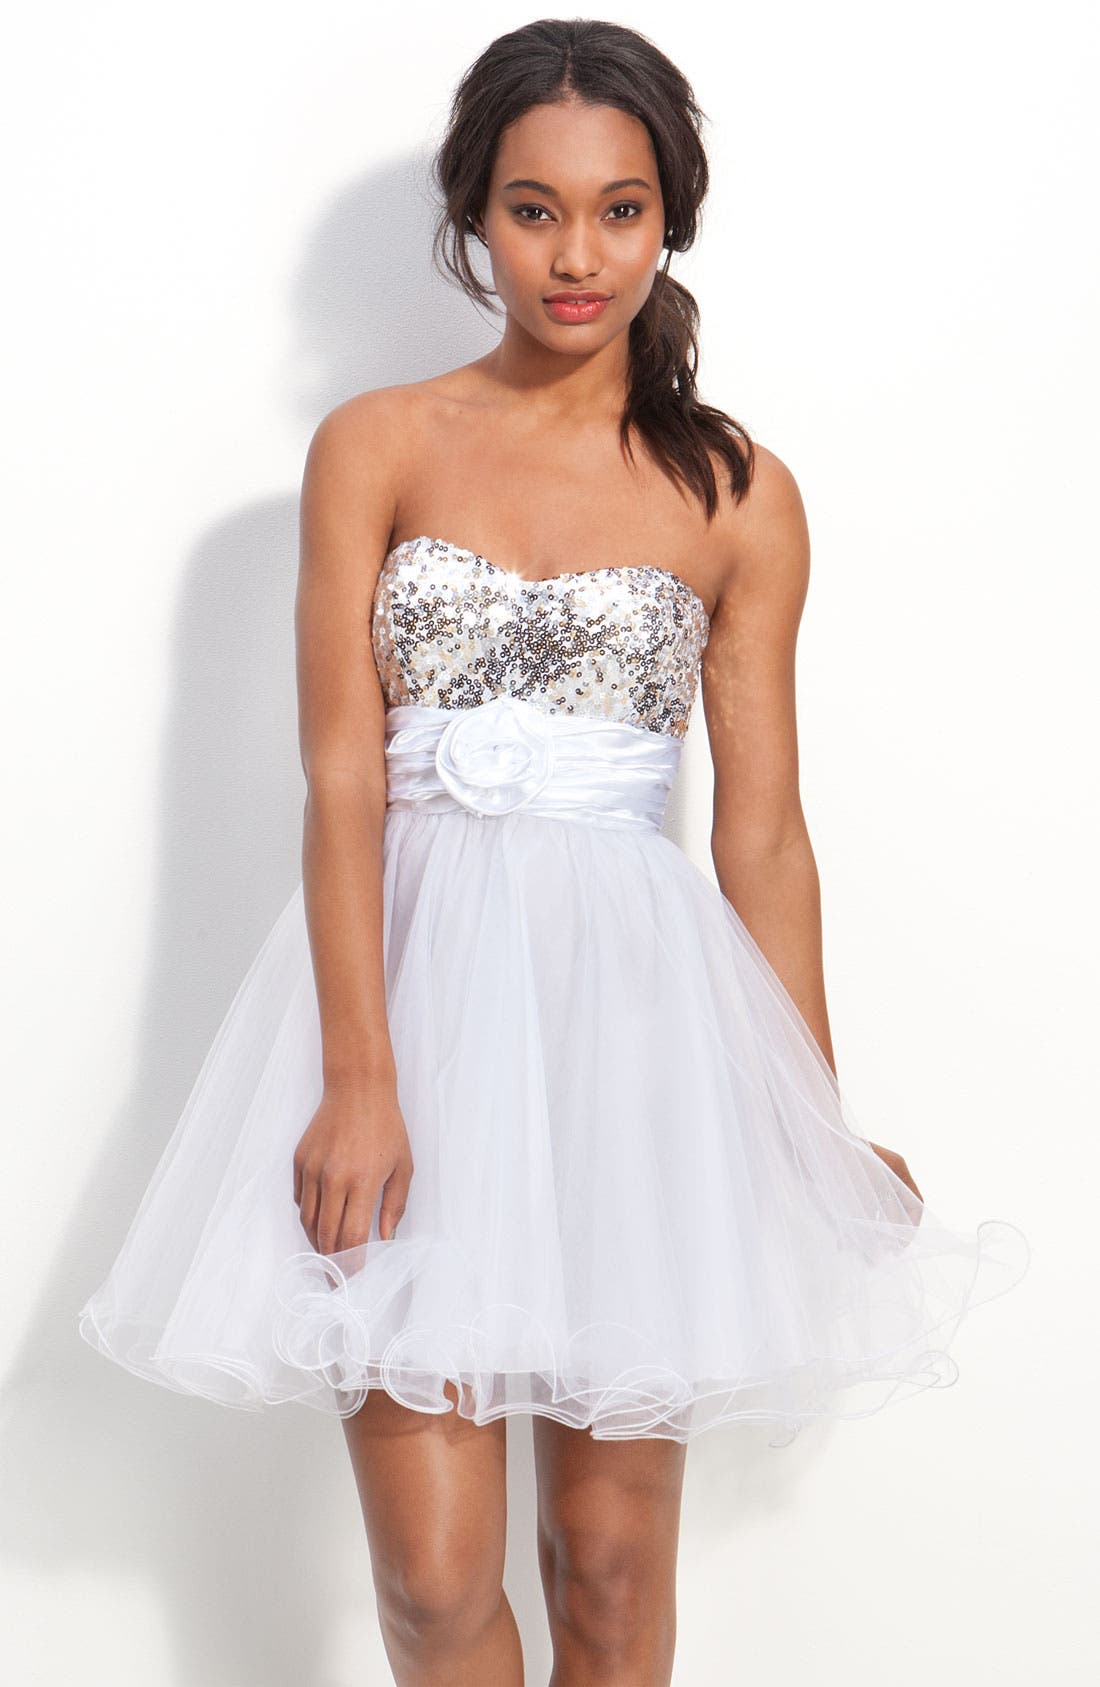 Alternate Image 1 Selected - Accidentally In Love Strapless Sequin & Tulle Party Dress (Juniors)